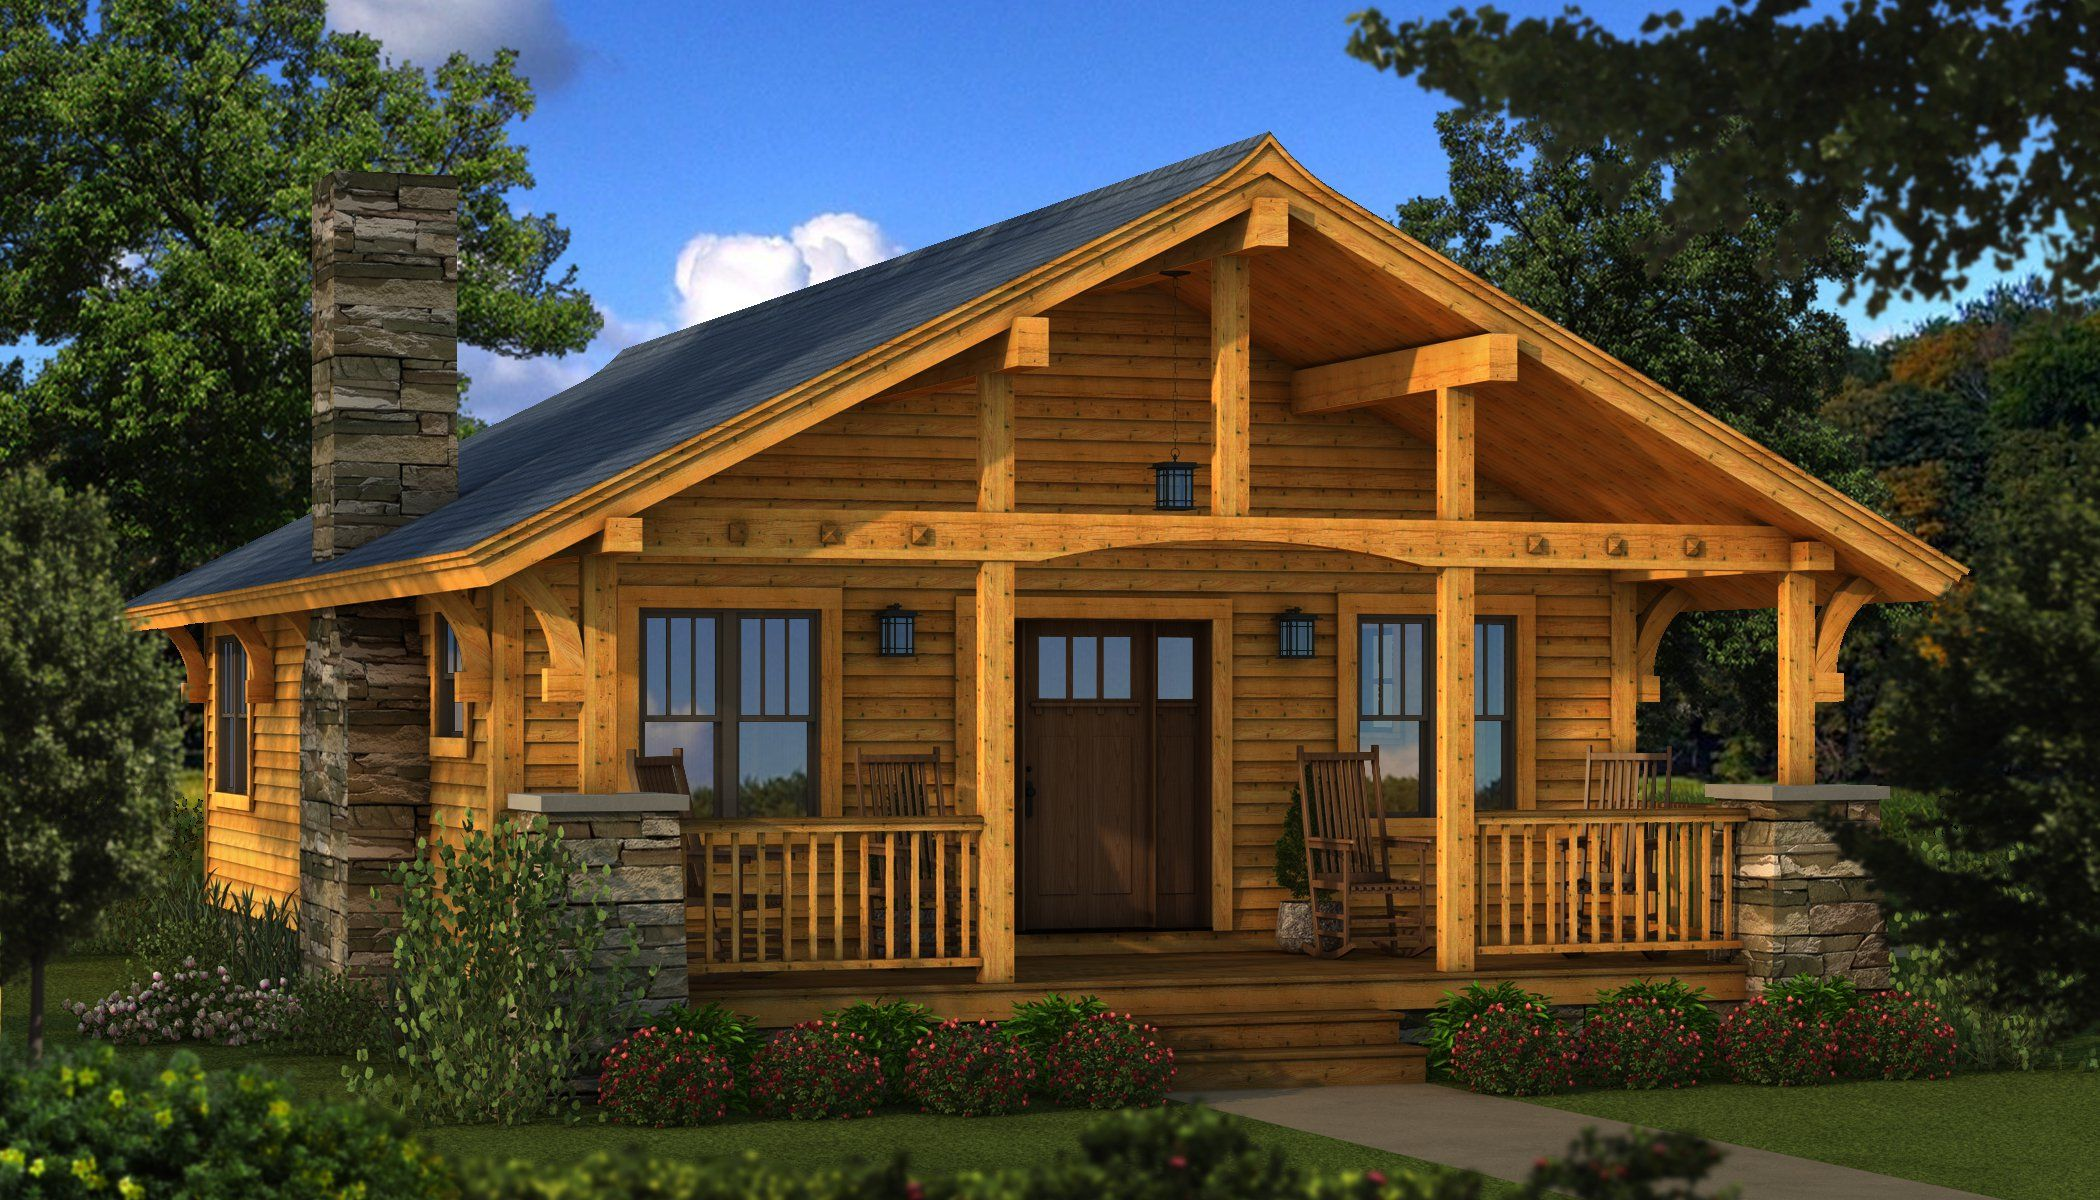 Bungalow 2 log cabin kit plans information Southland log homes